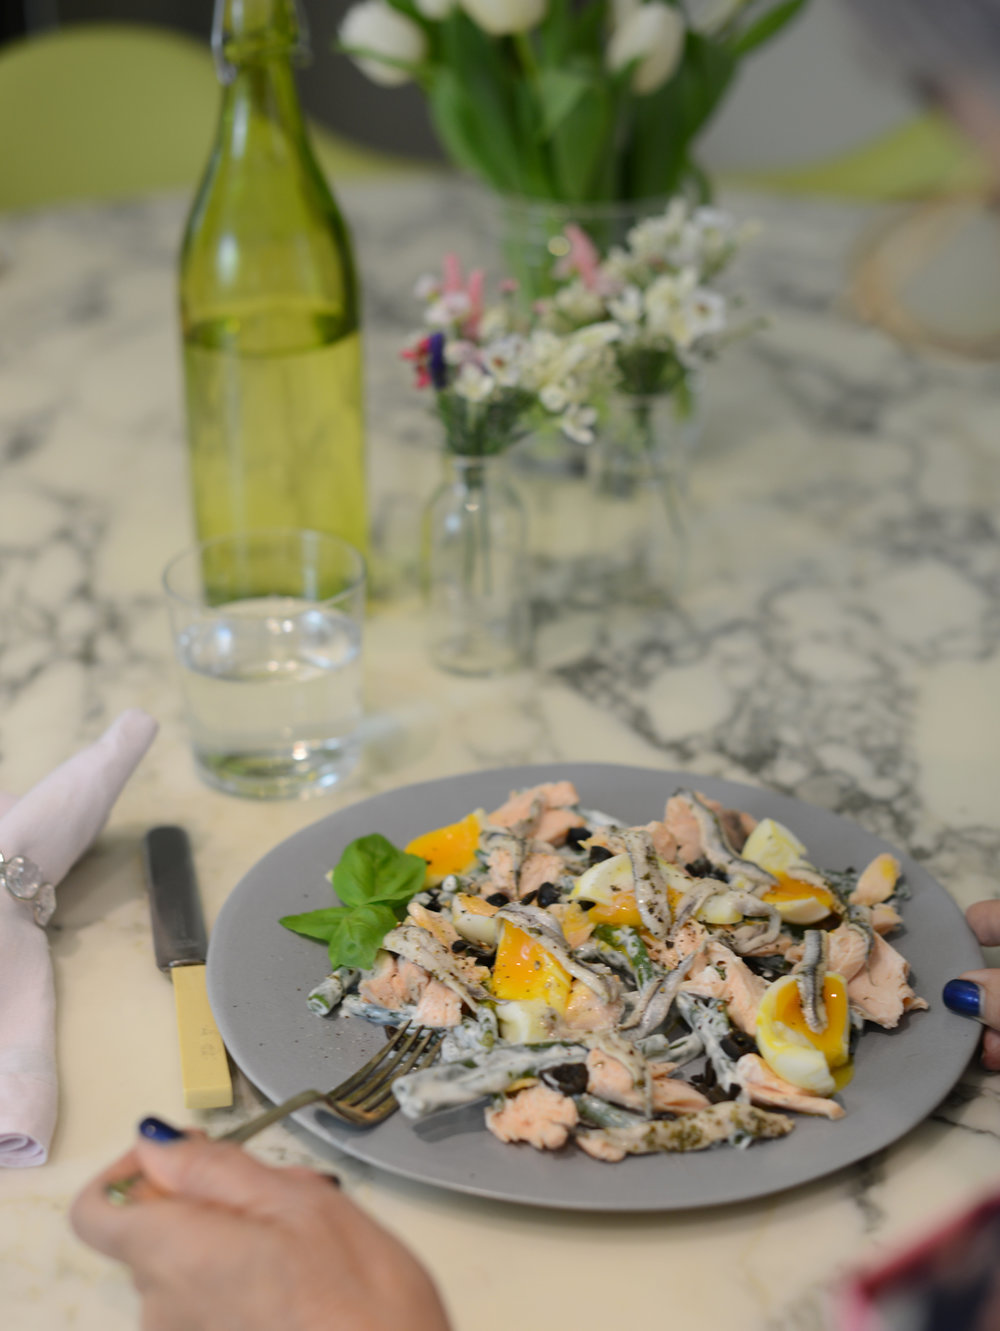 Photography by  Notes from a Stylis t, of a sort of salmon nicoise we made together with health boosting omega 3-rich oily fish.